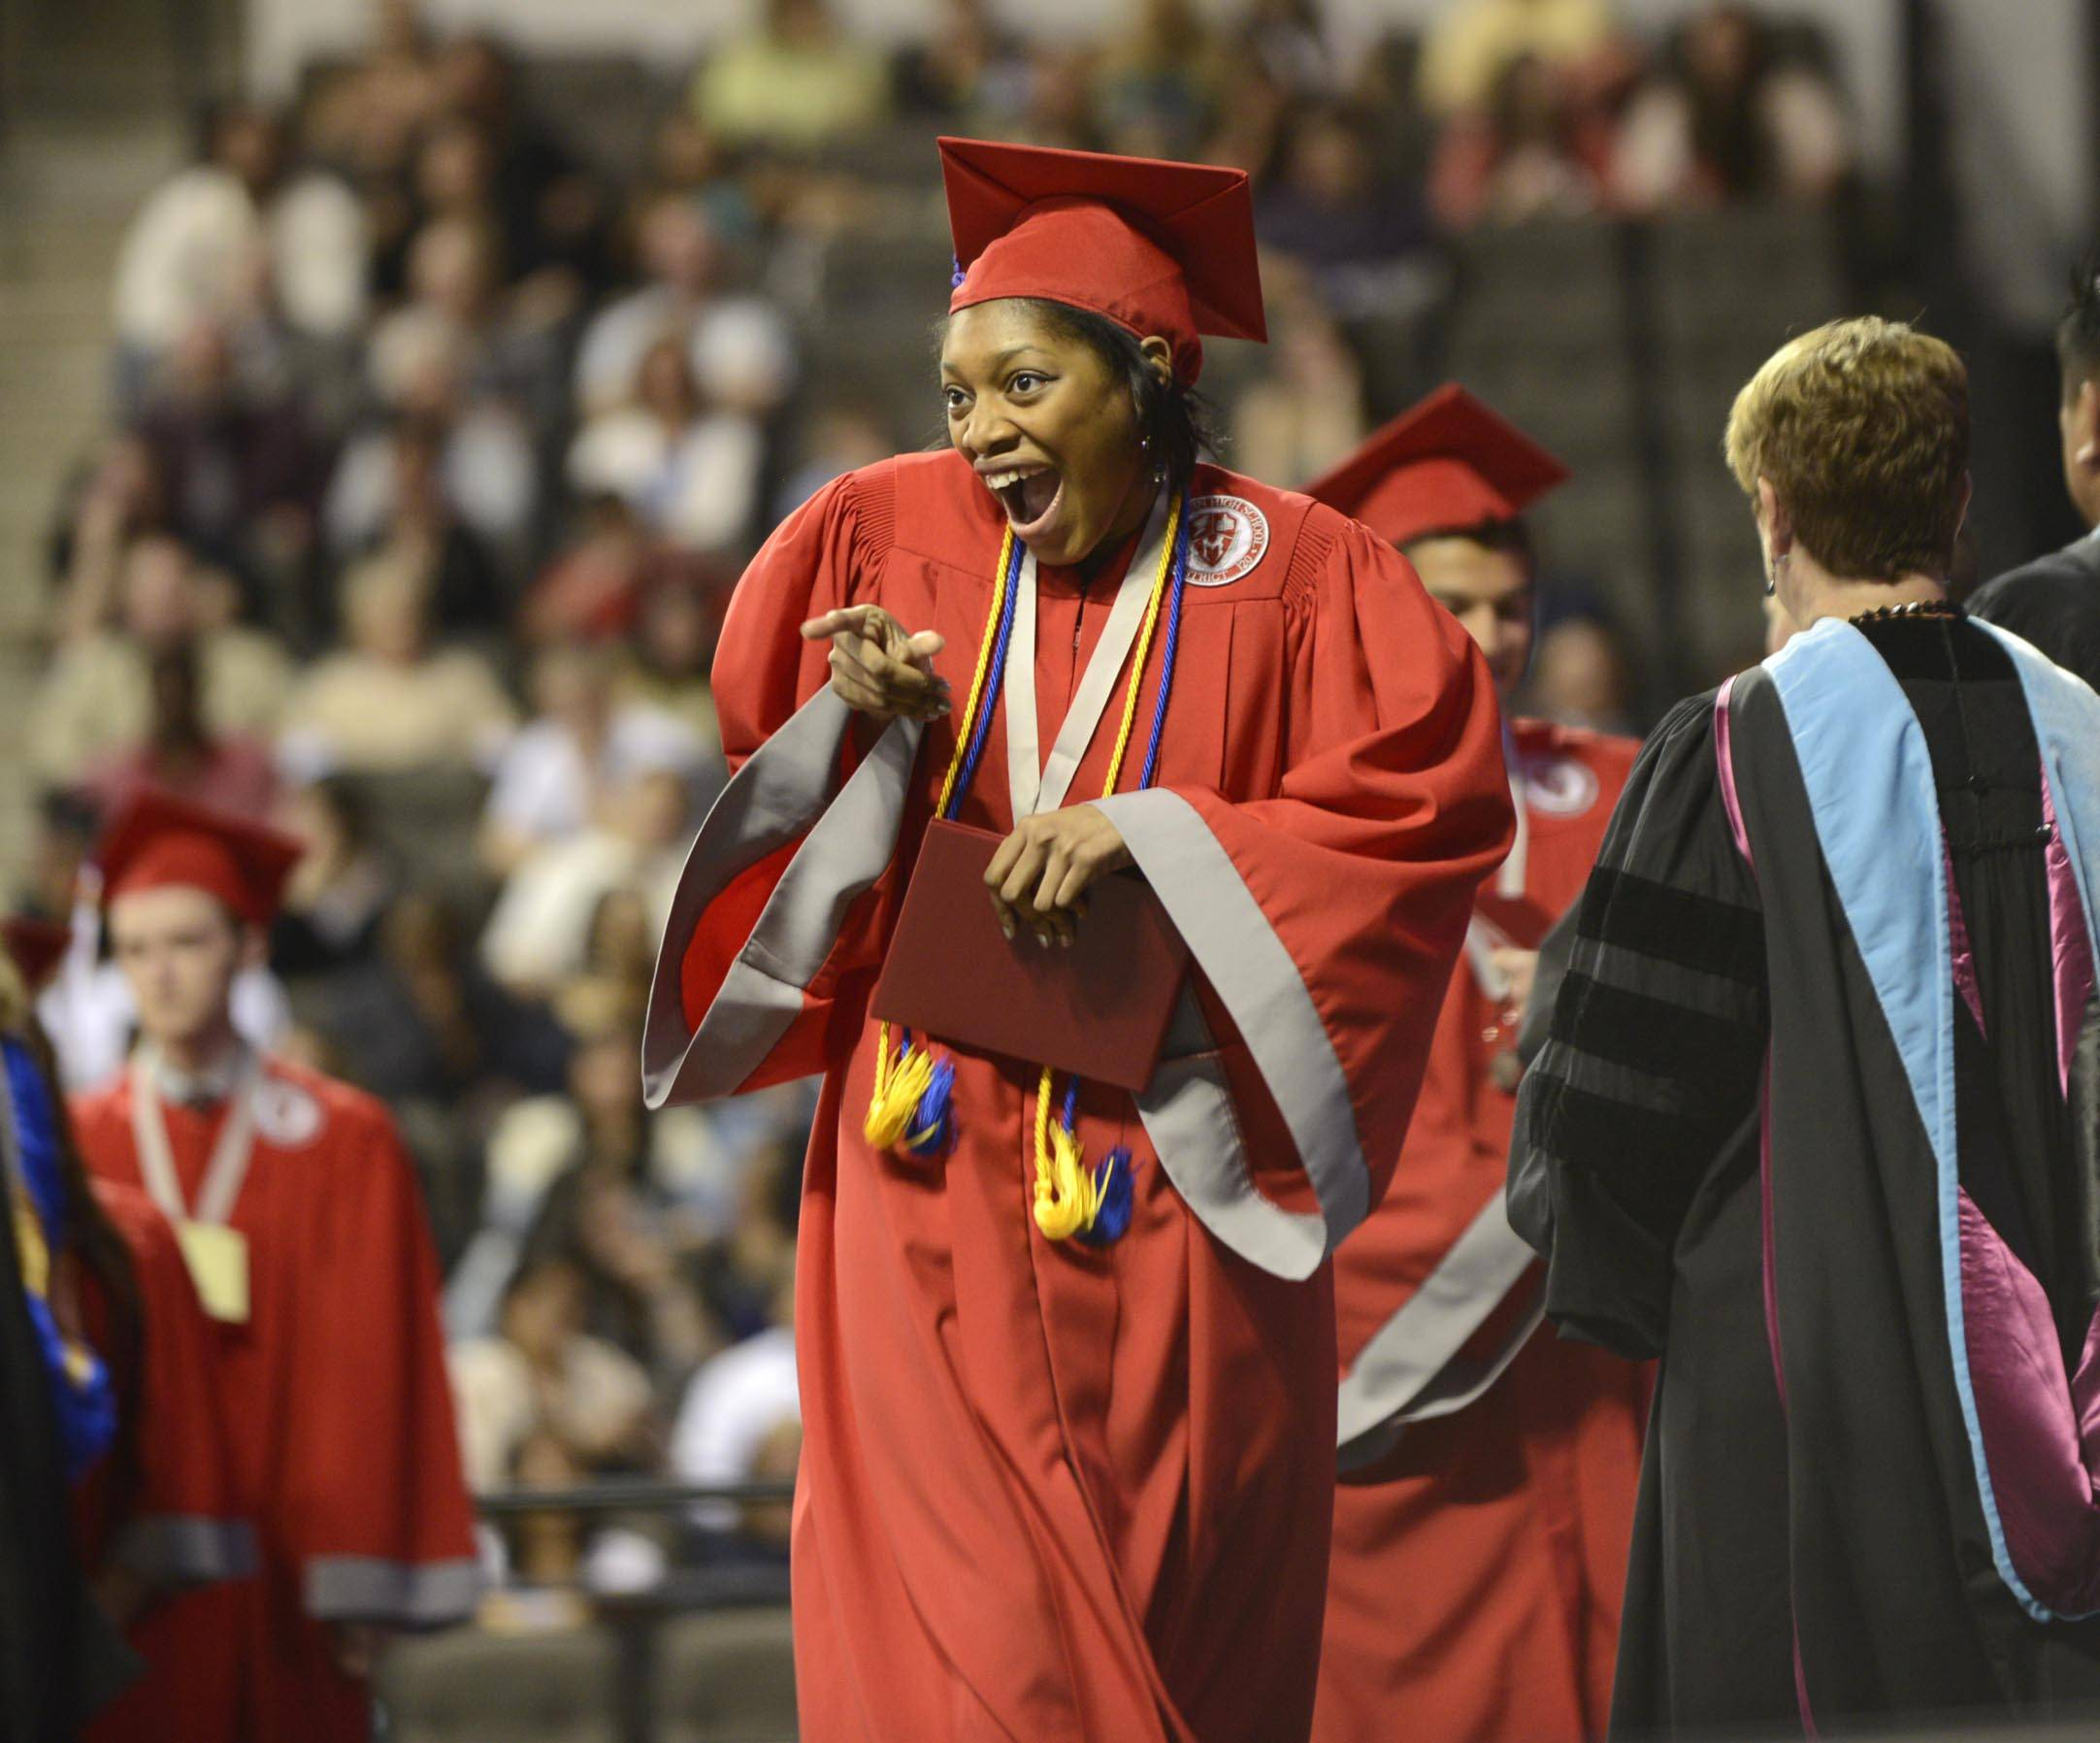 Graduate Chamaya Moody gestures toward a video camera as she crosses the stage with her diploma Sunday at the Mundelein High school Commencement Exercises at Sears Center in Hoffman Estates.